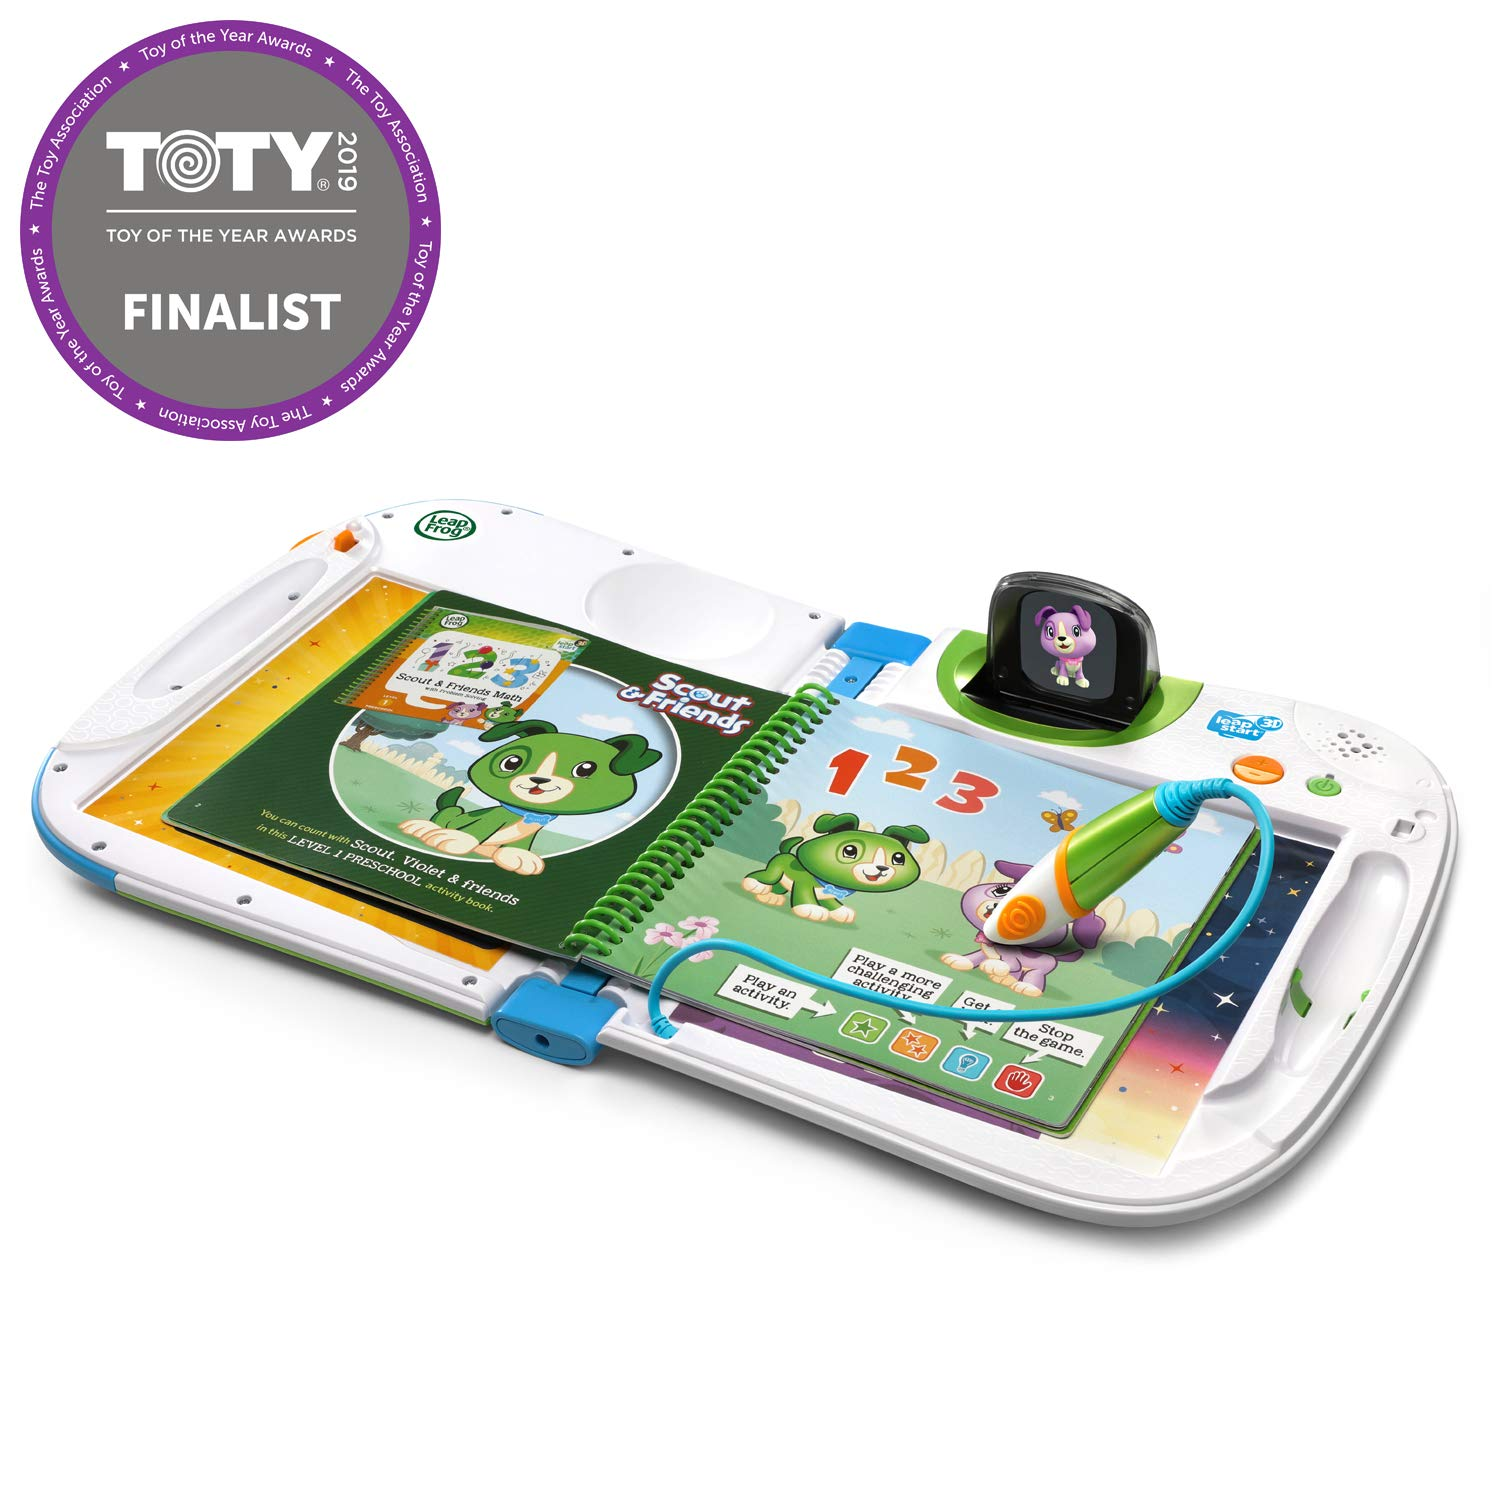 LeapFrog LeapStart 3D Interactive Learning System (Frustration Free Packaging), Green by LeapFrog (Image #1)